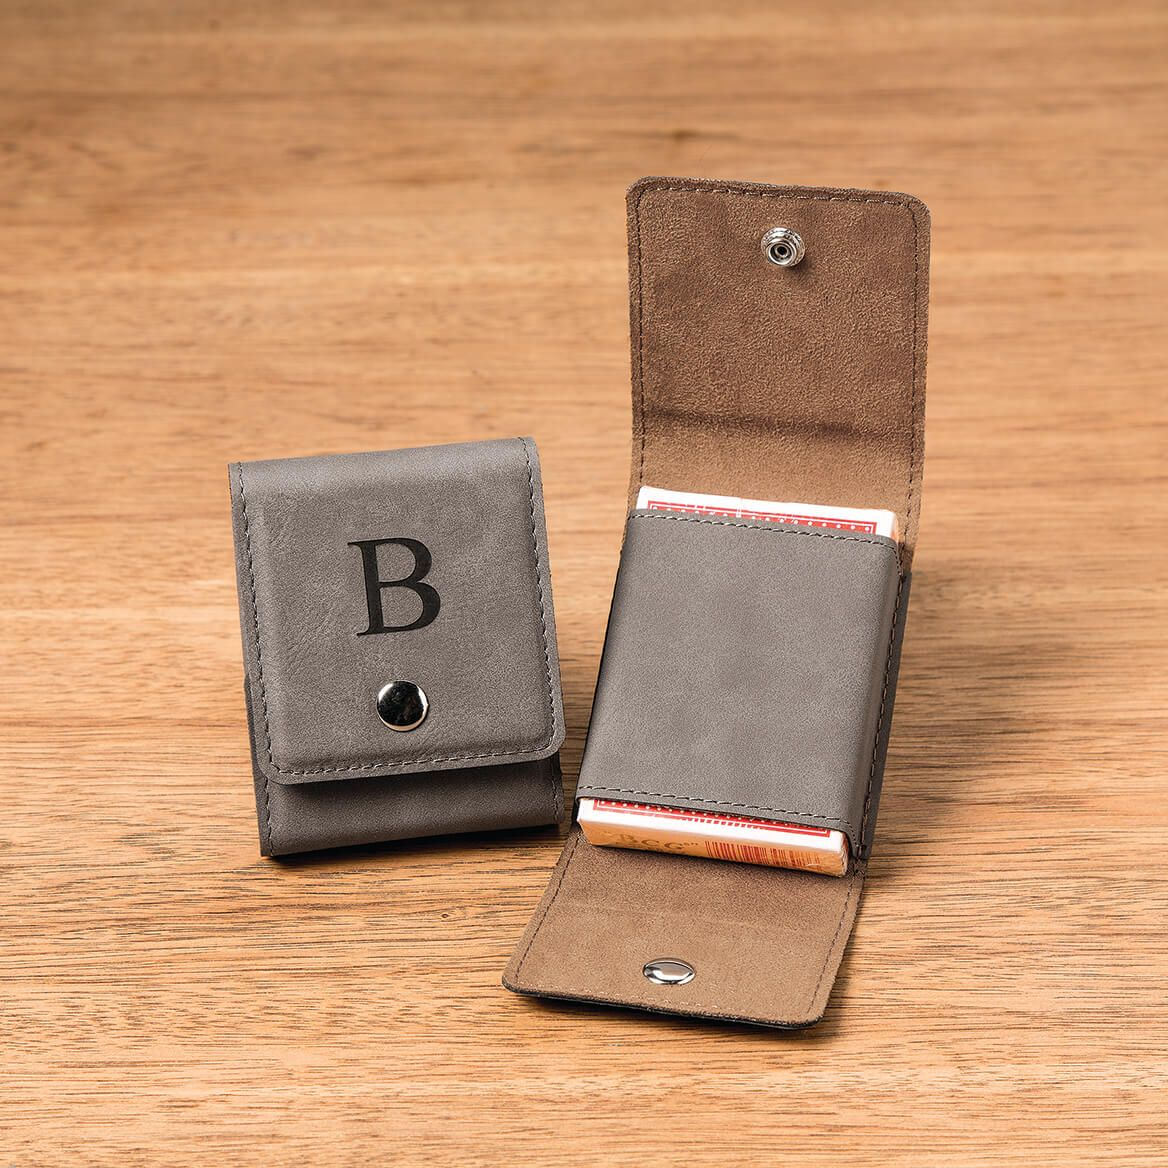 Personalized Leather Card Holder and Cards-368577